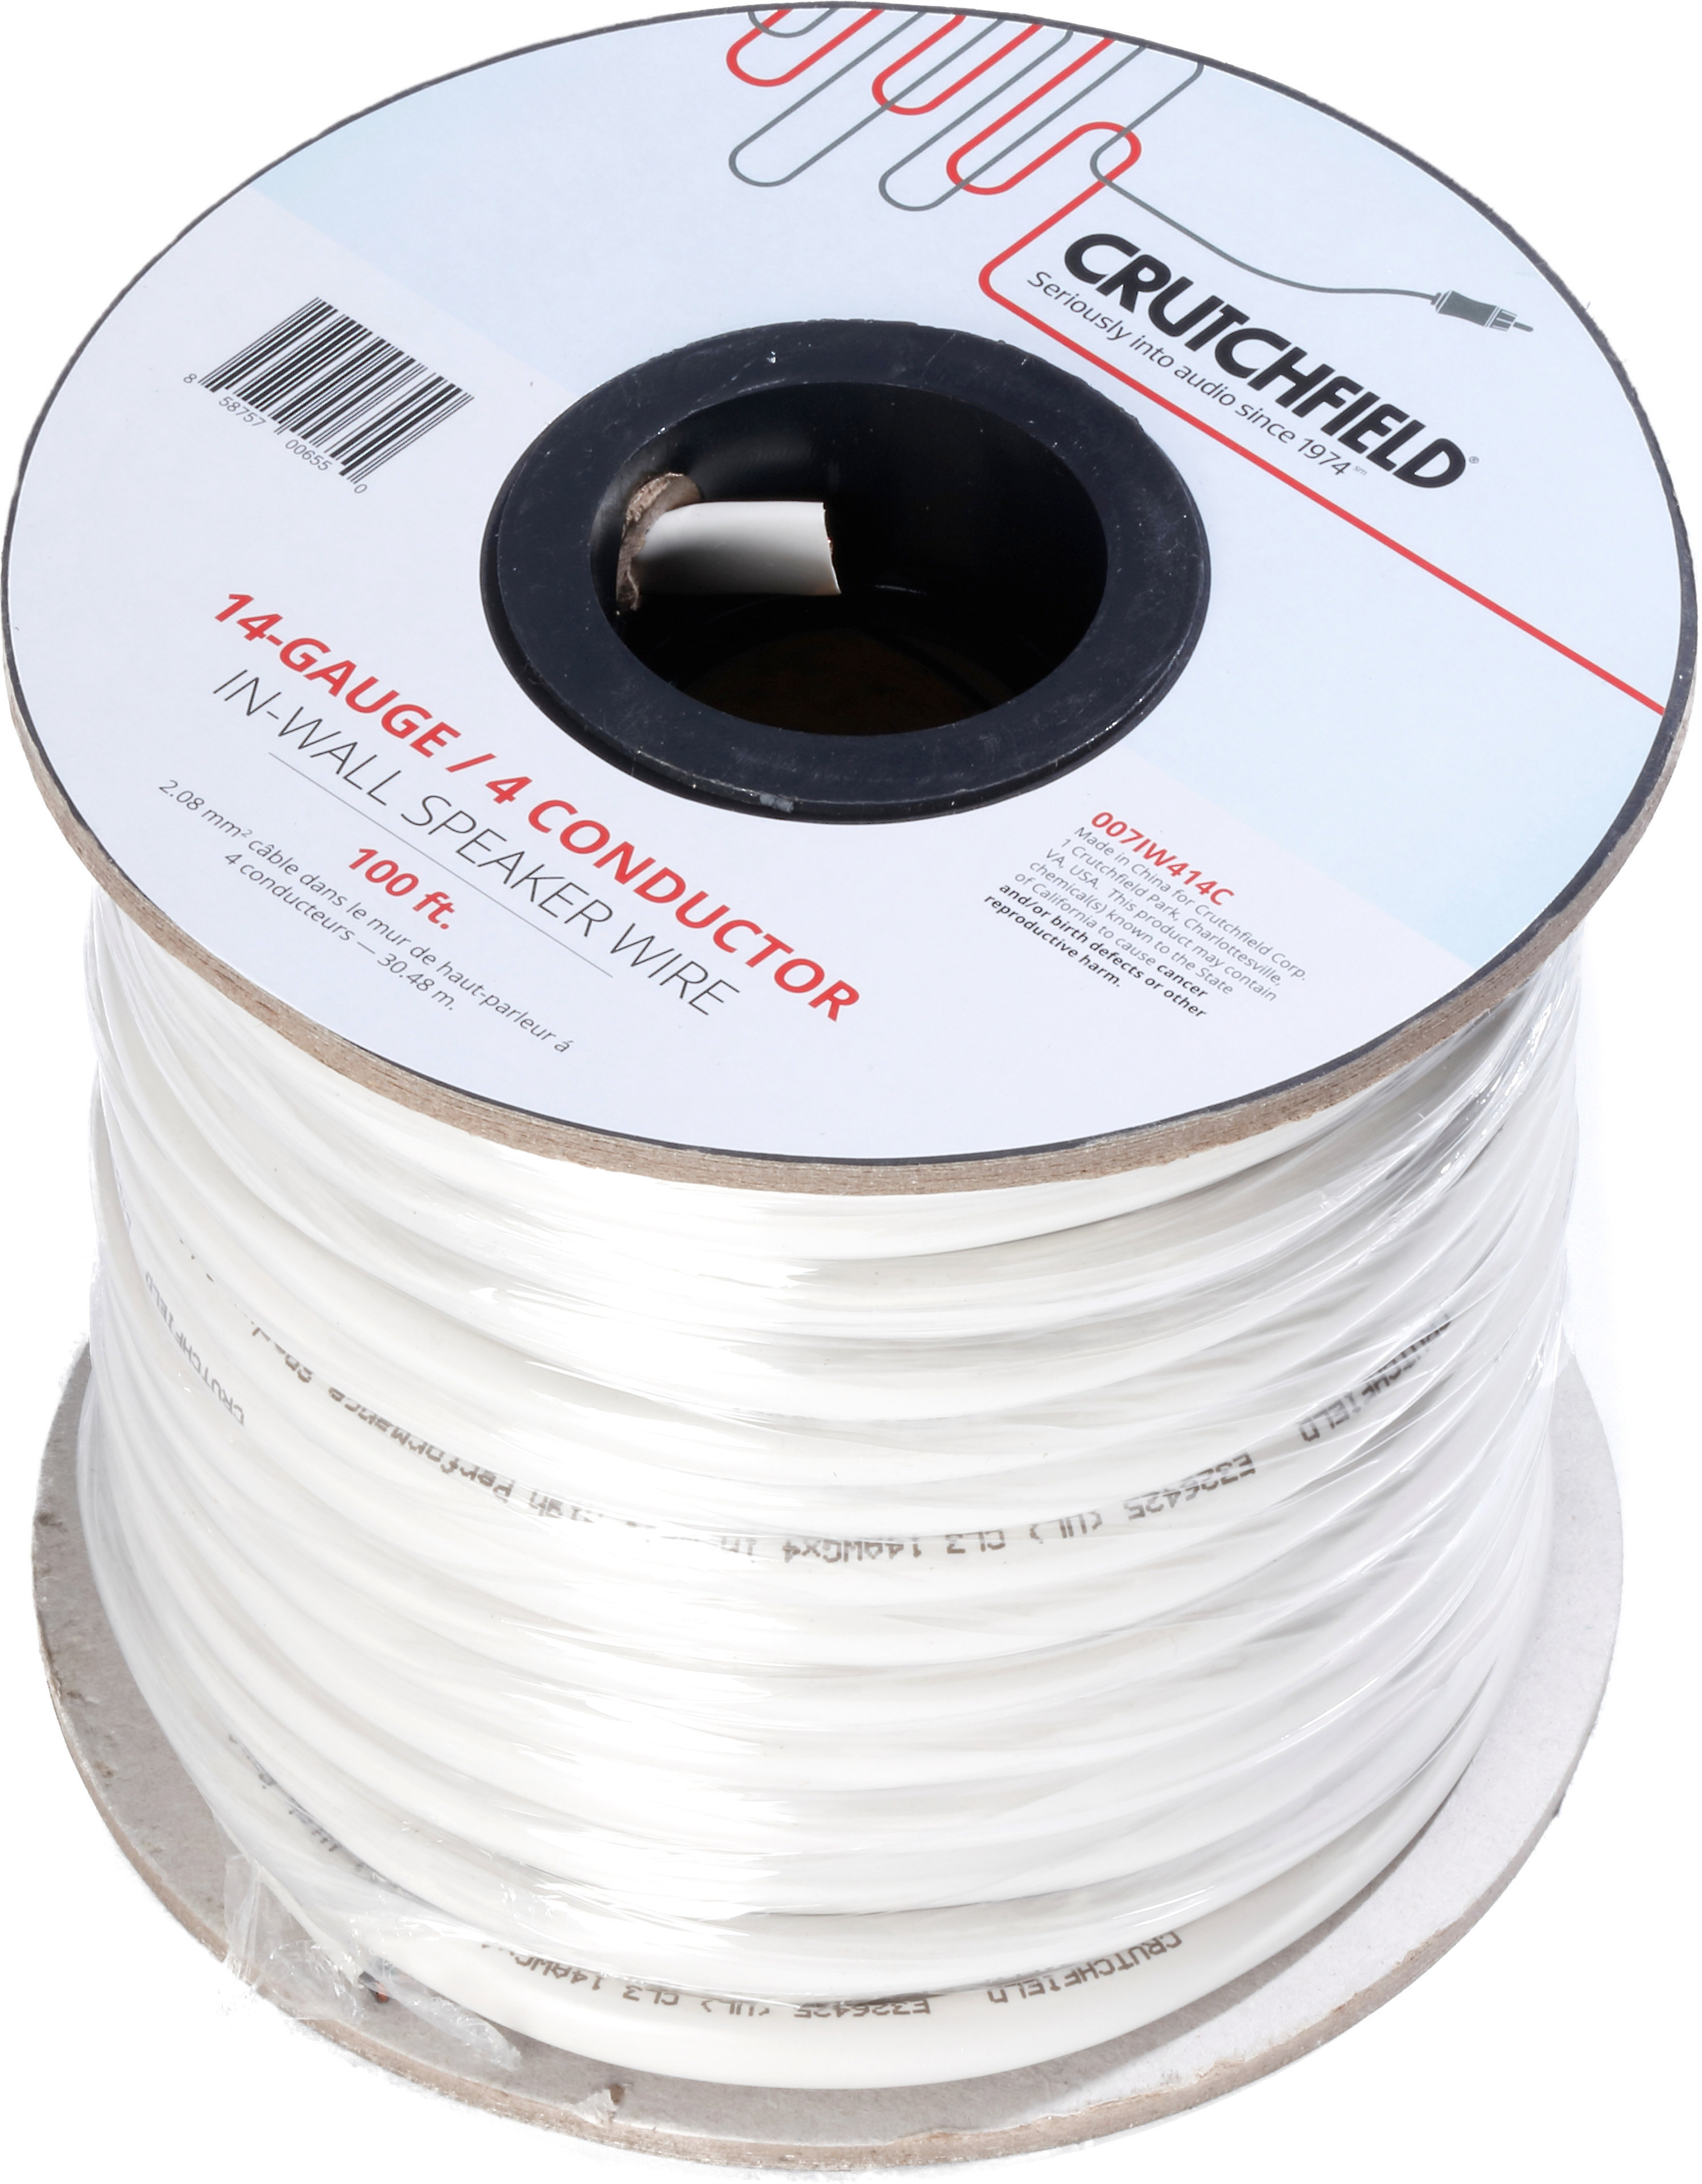 500 Foot Roll Crutchfield 14 Gauge in-Wall 2 Conductor Wire